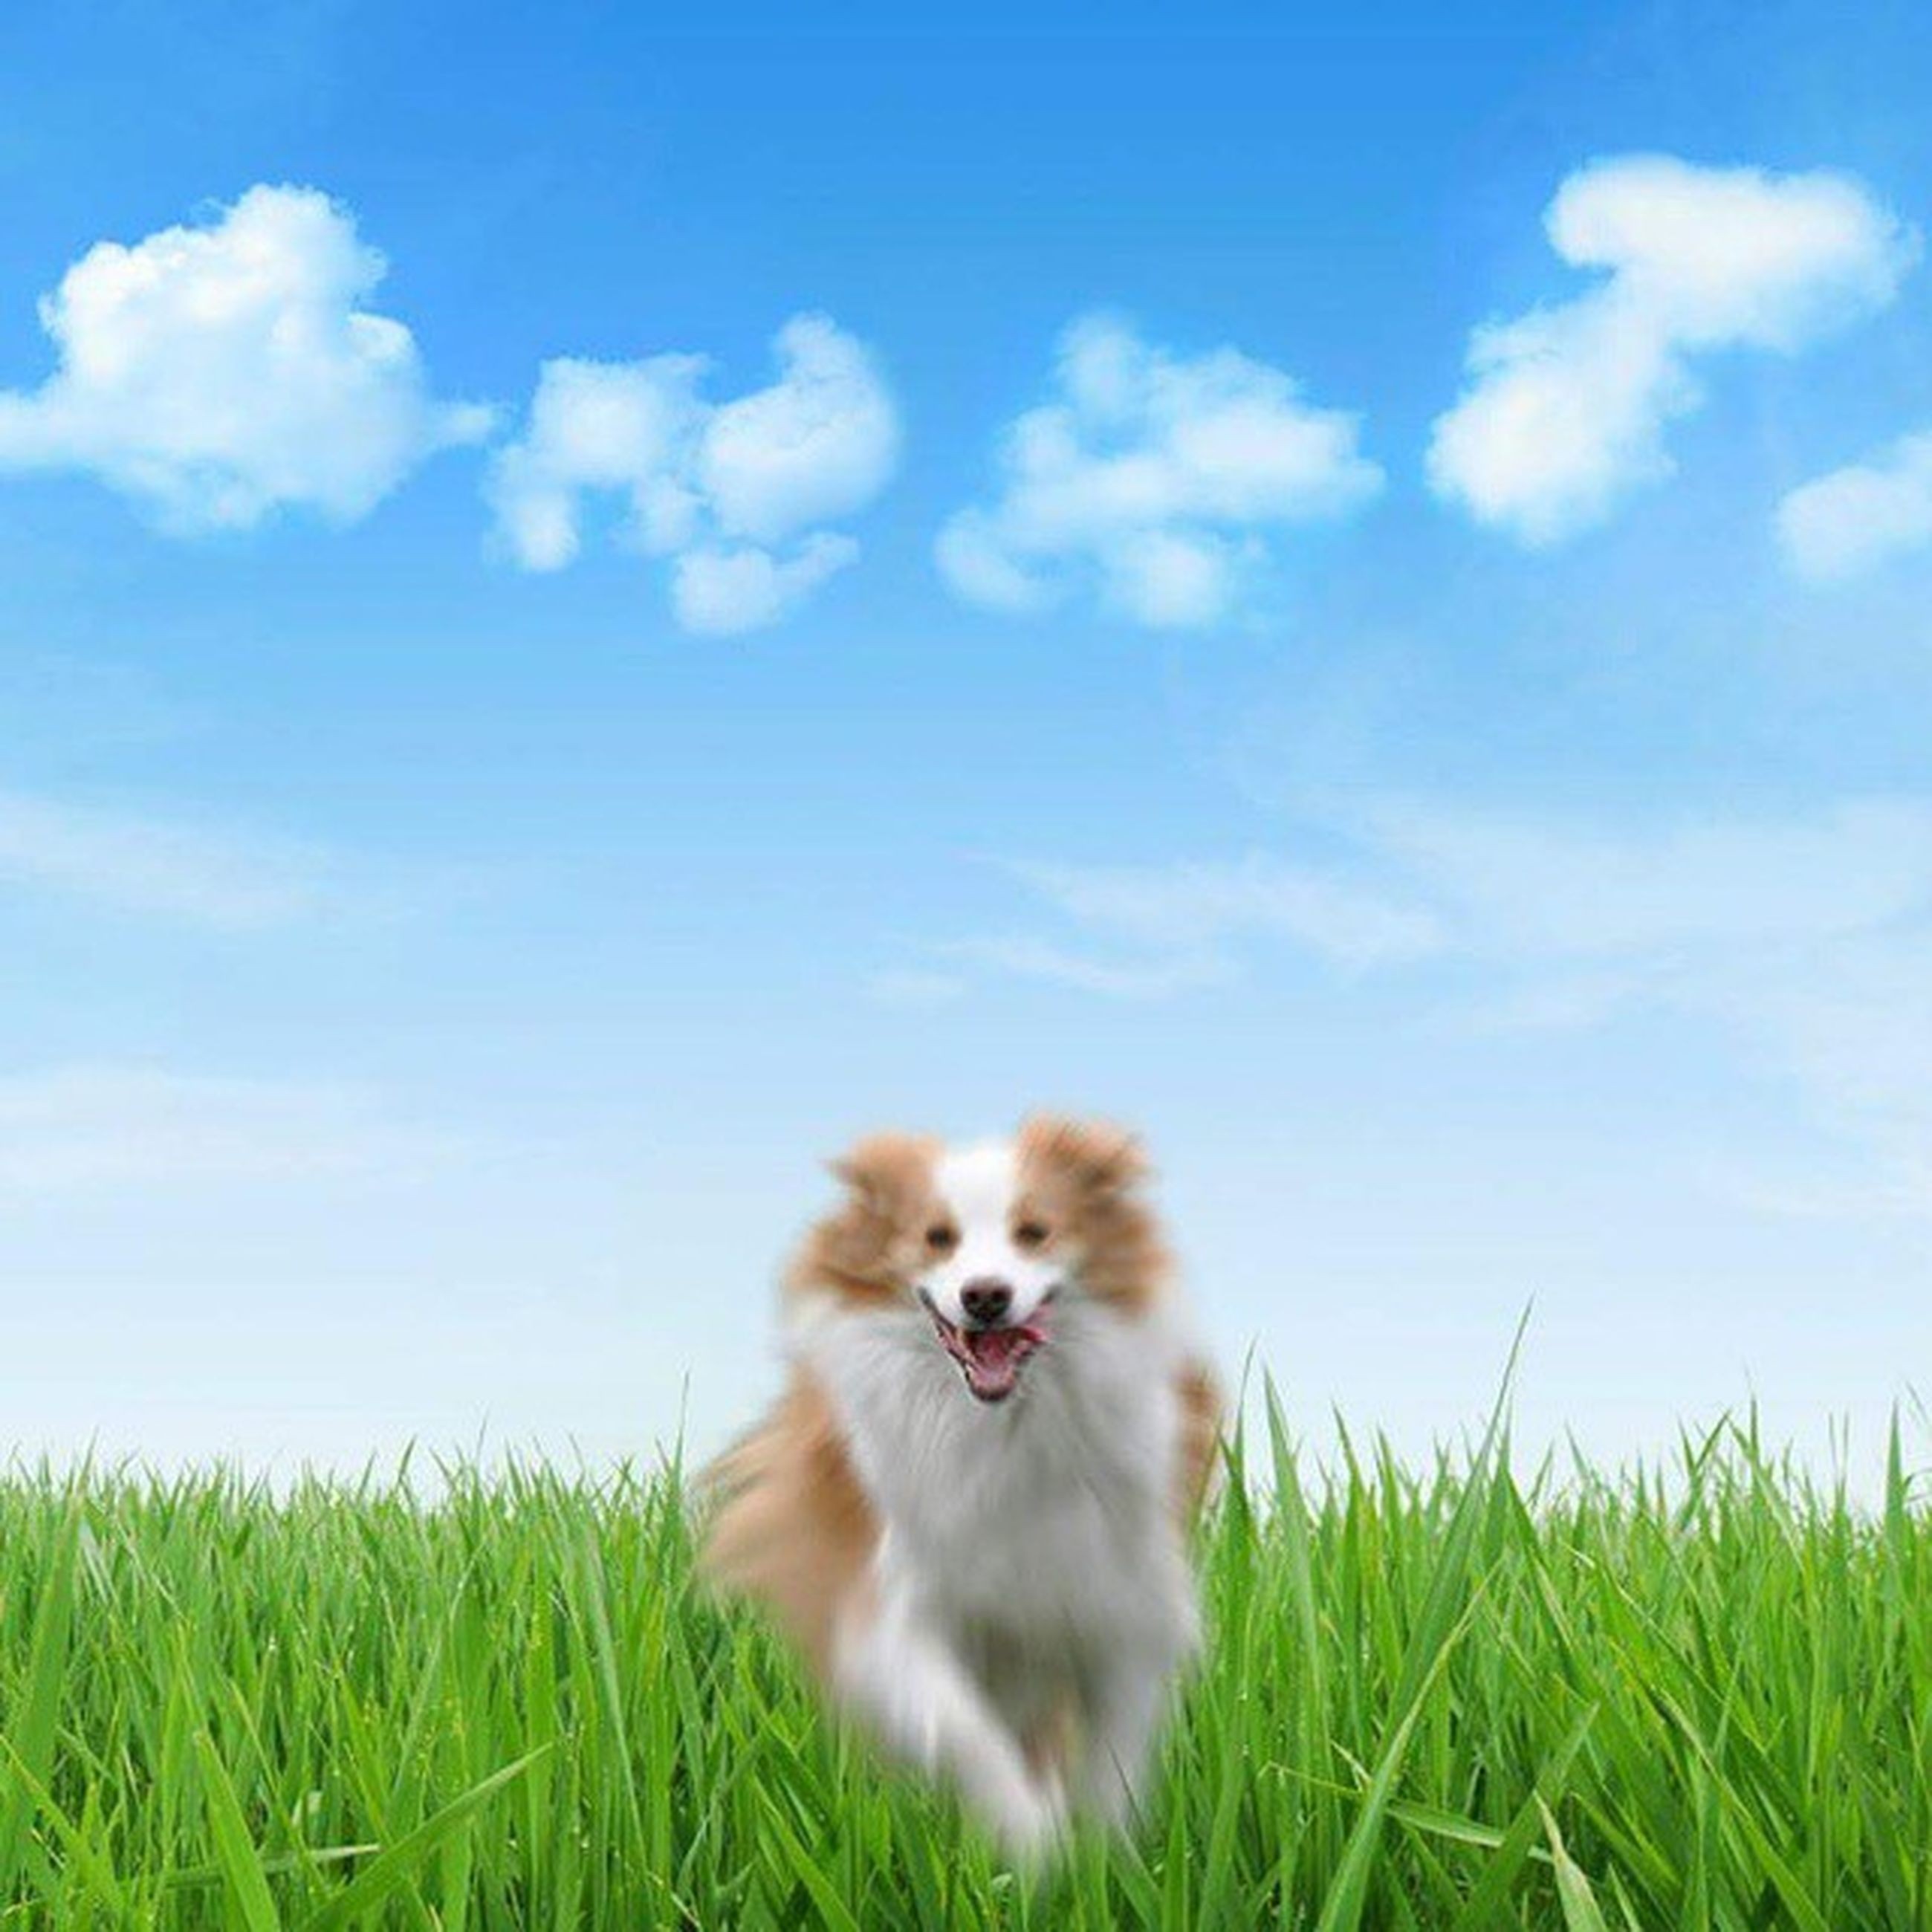 animal themes, grass, domestic animals, one animal, mammal, pets, field, grassy, sky, looking at camera, portrait, relaxation, nature, domestic cat, day, dog, blue, no people, outdoors, landscape